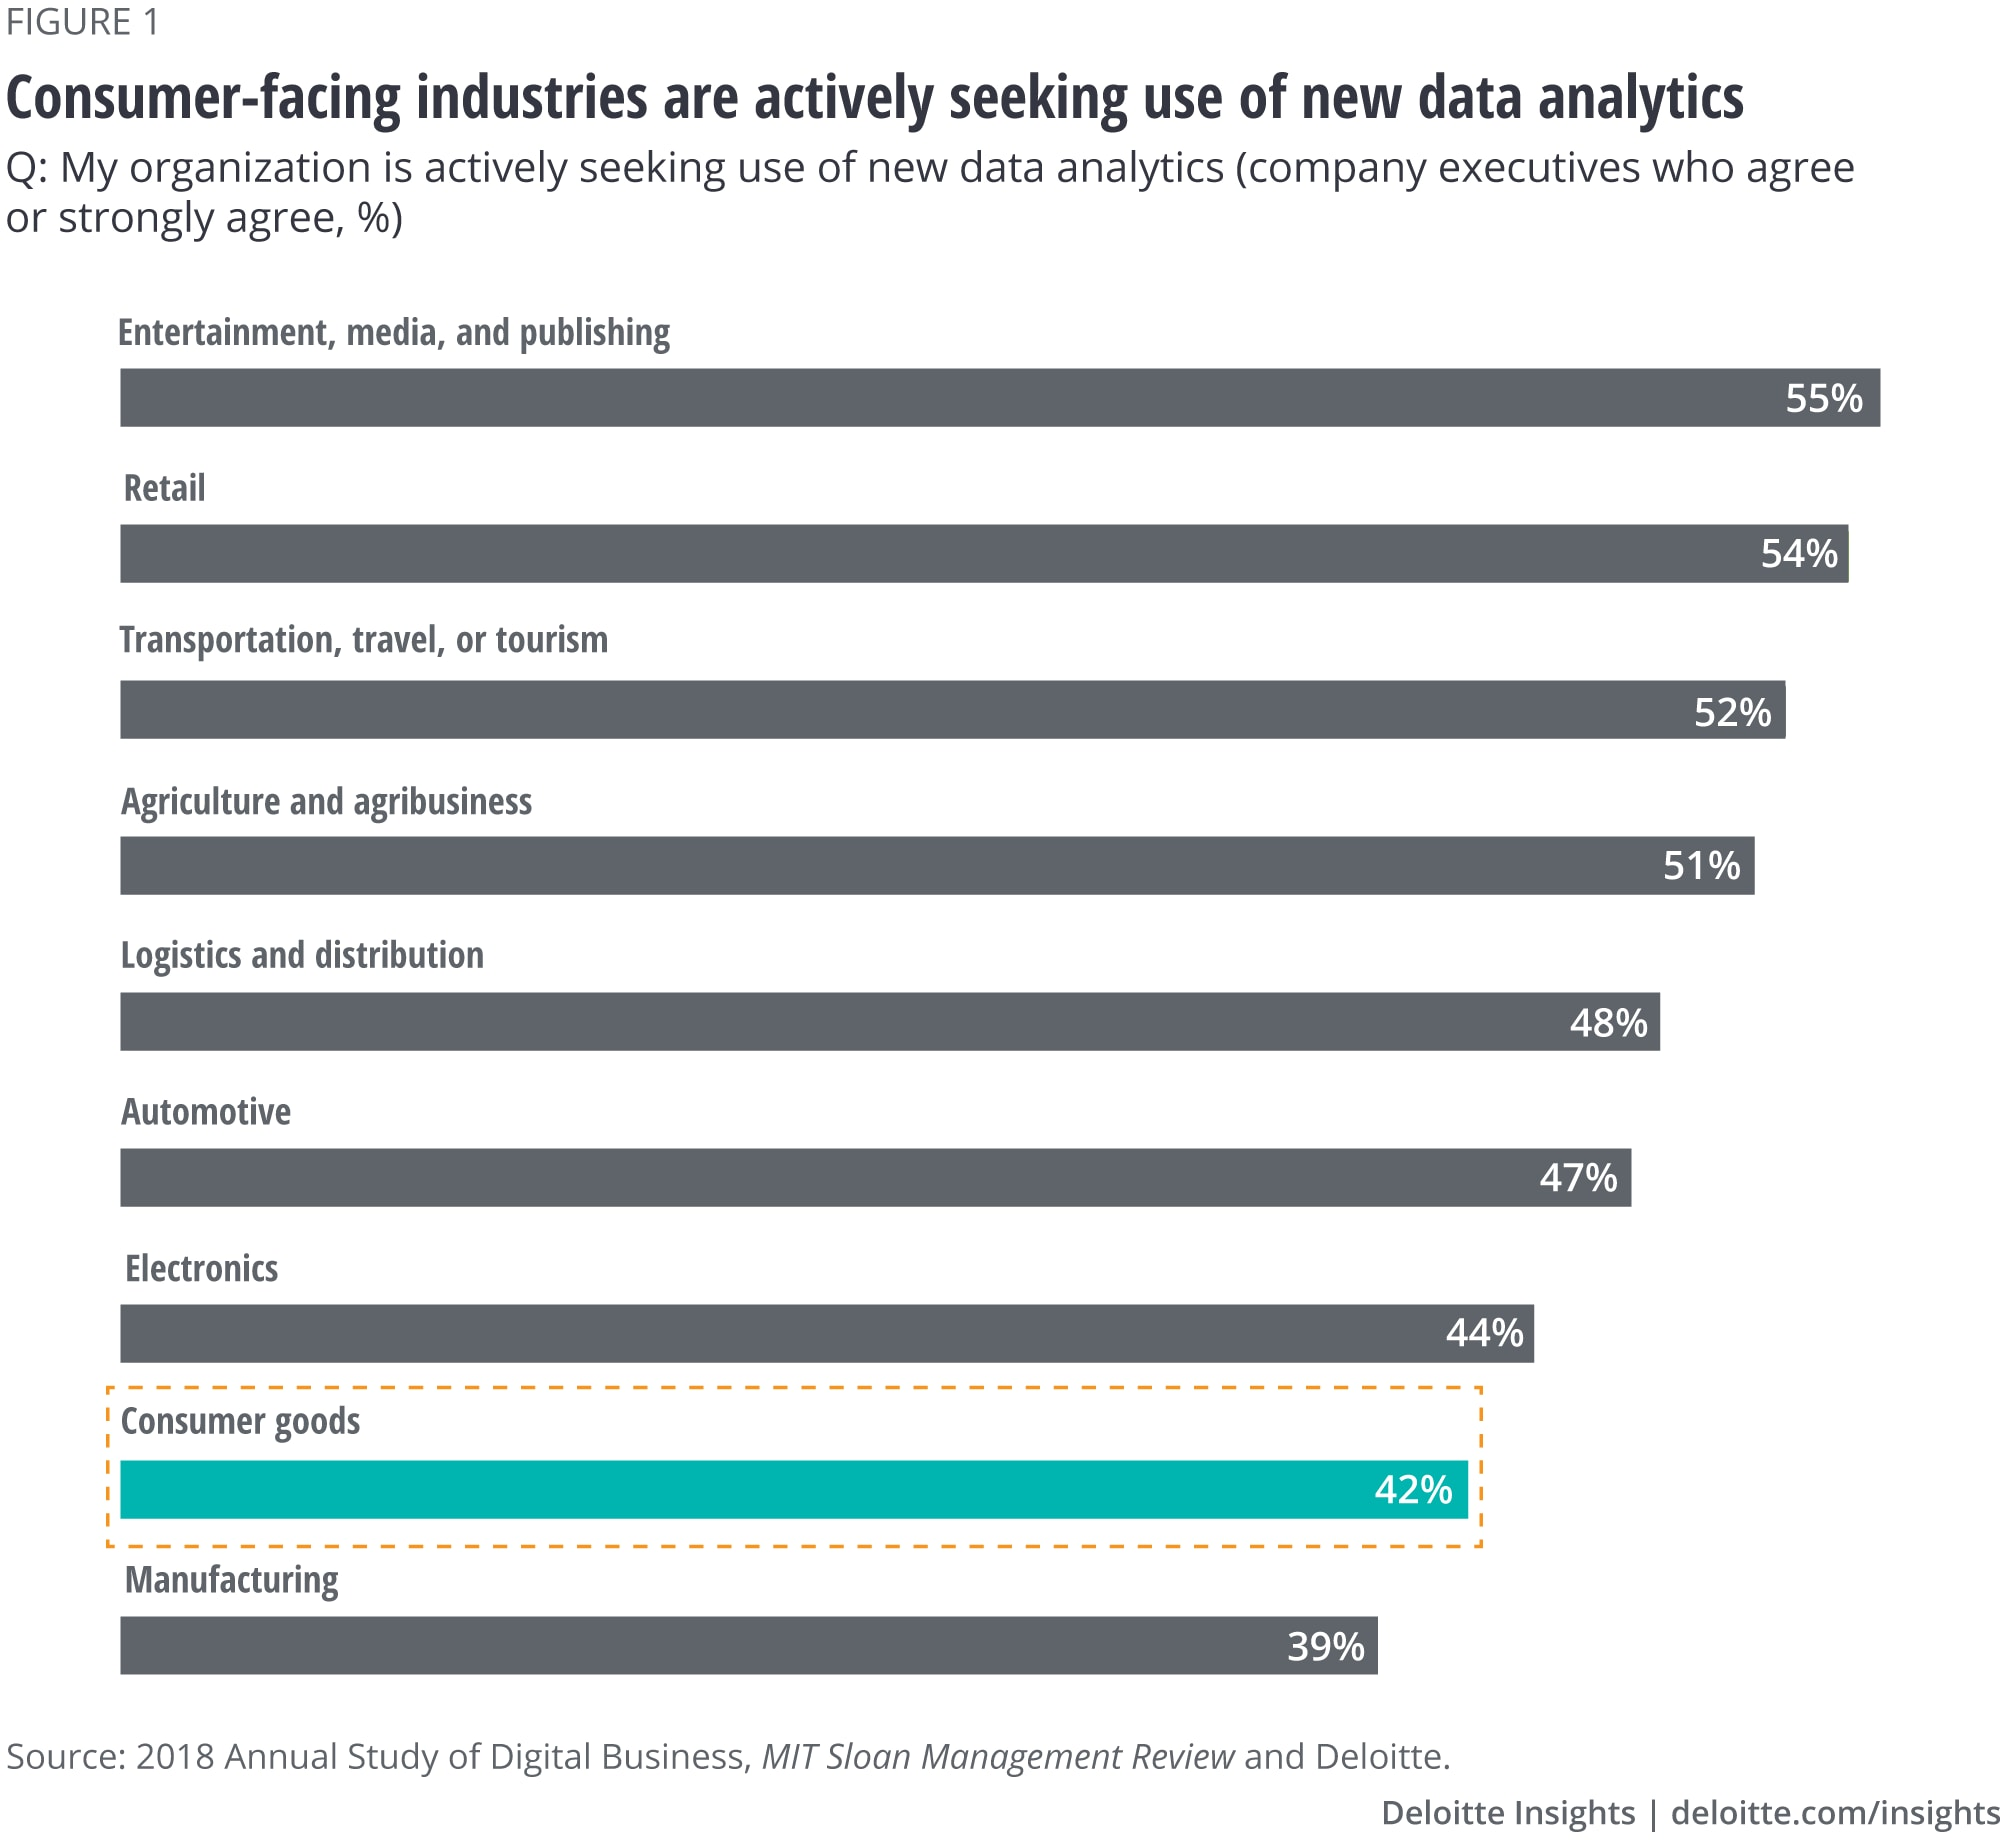 Consumer-facing industries actively seeking use of new data analytics